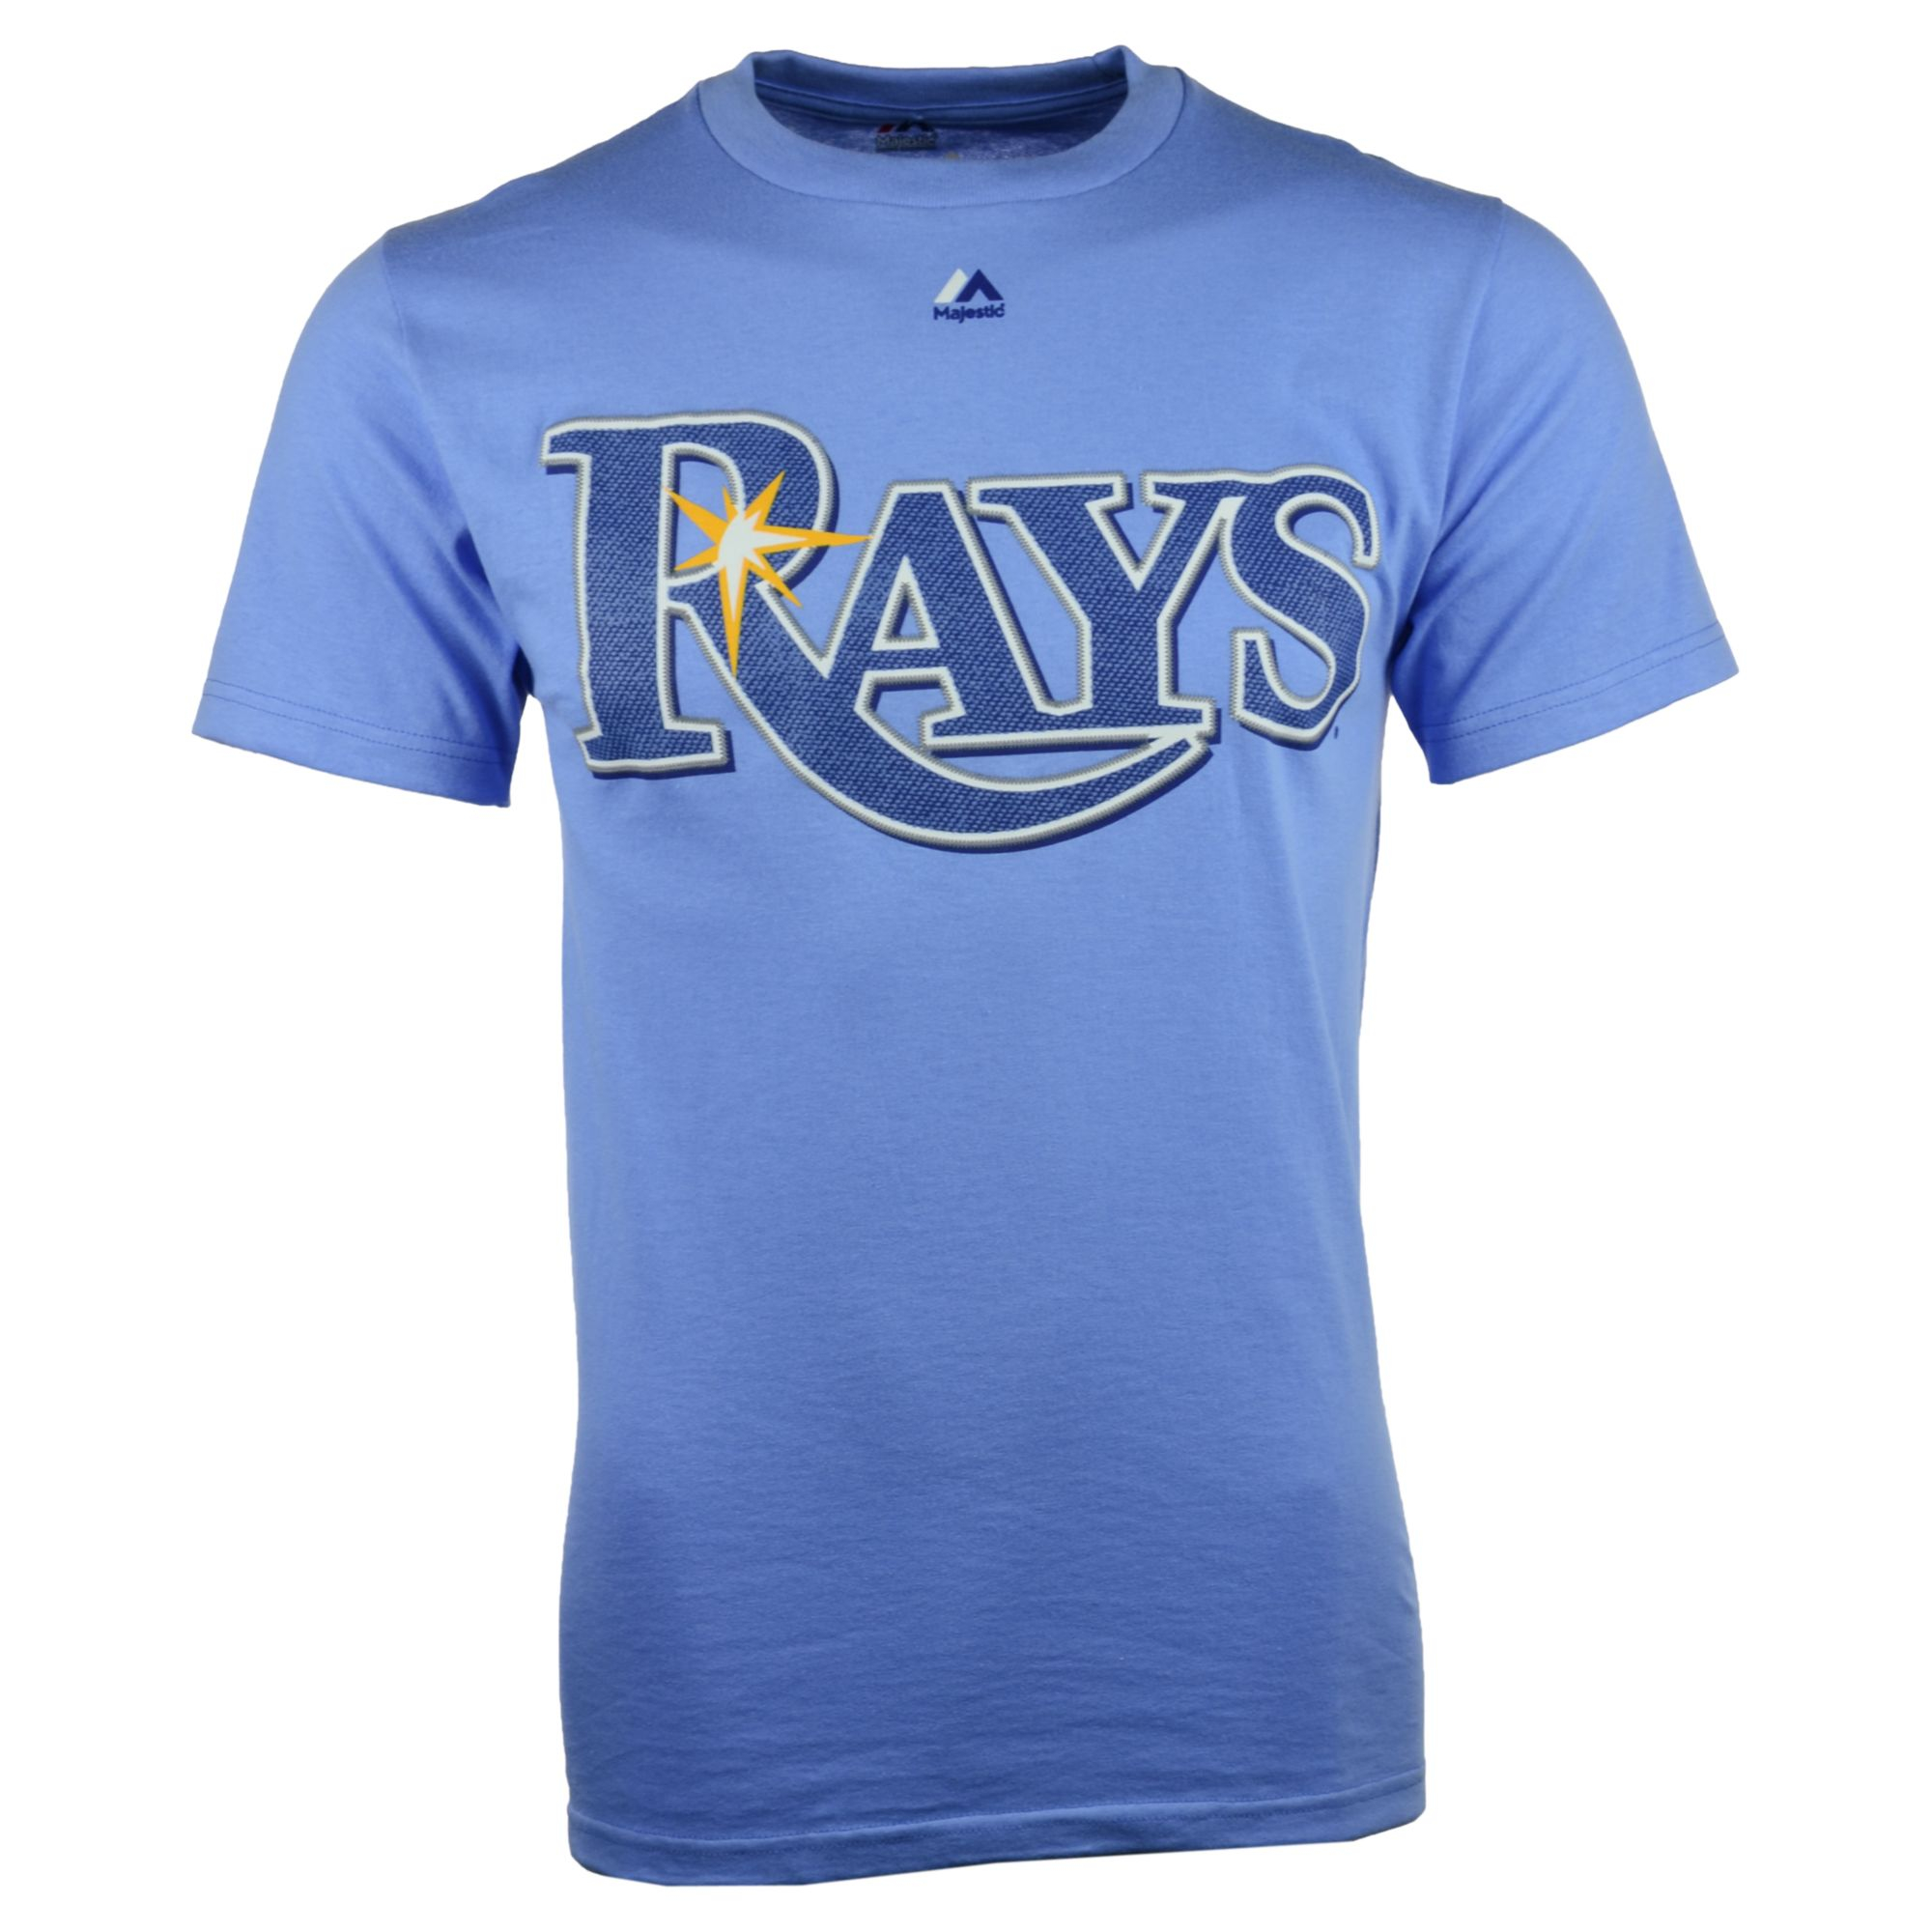 Majestic Men S Short Sleeve Tampa Bay Rays T Shirt In Blue